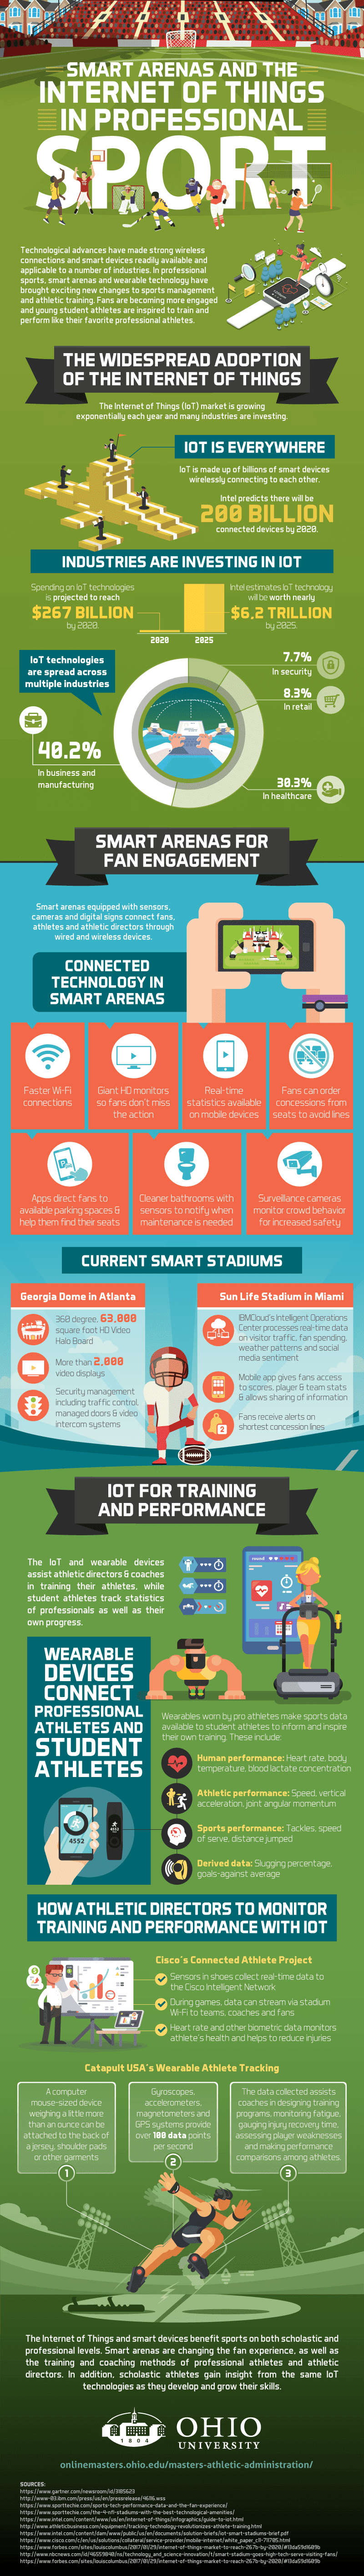 Smart Arenas and the Internet of Things in Professional Sport